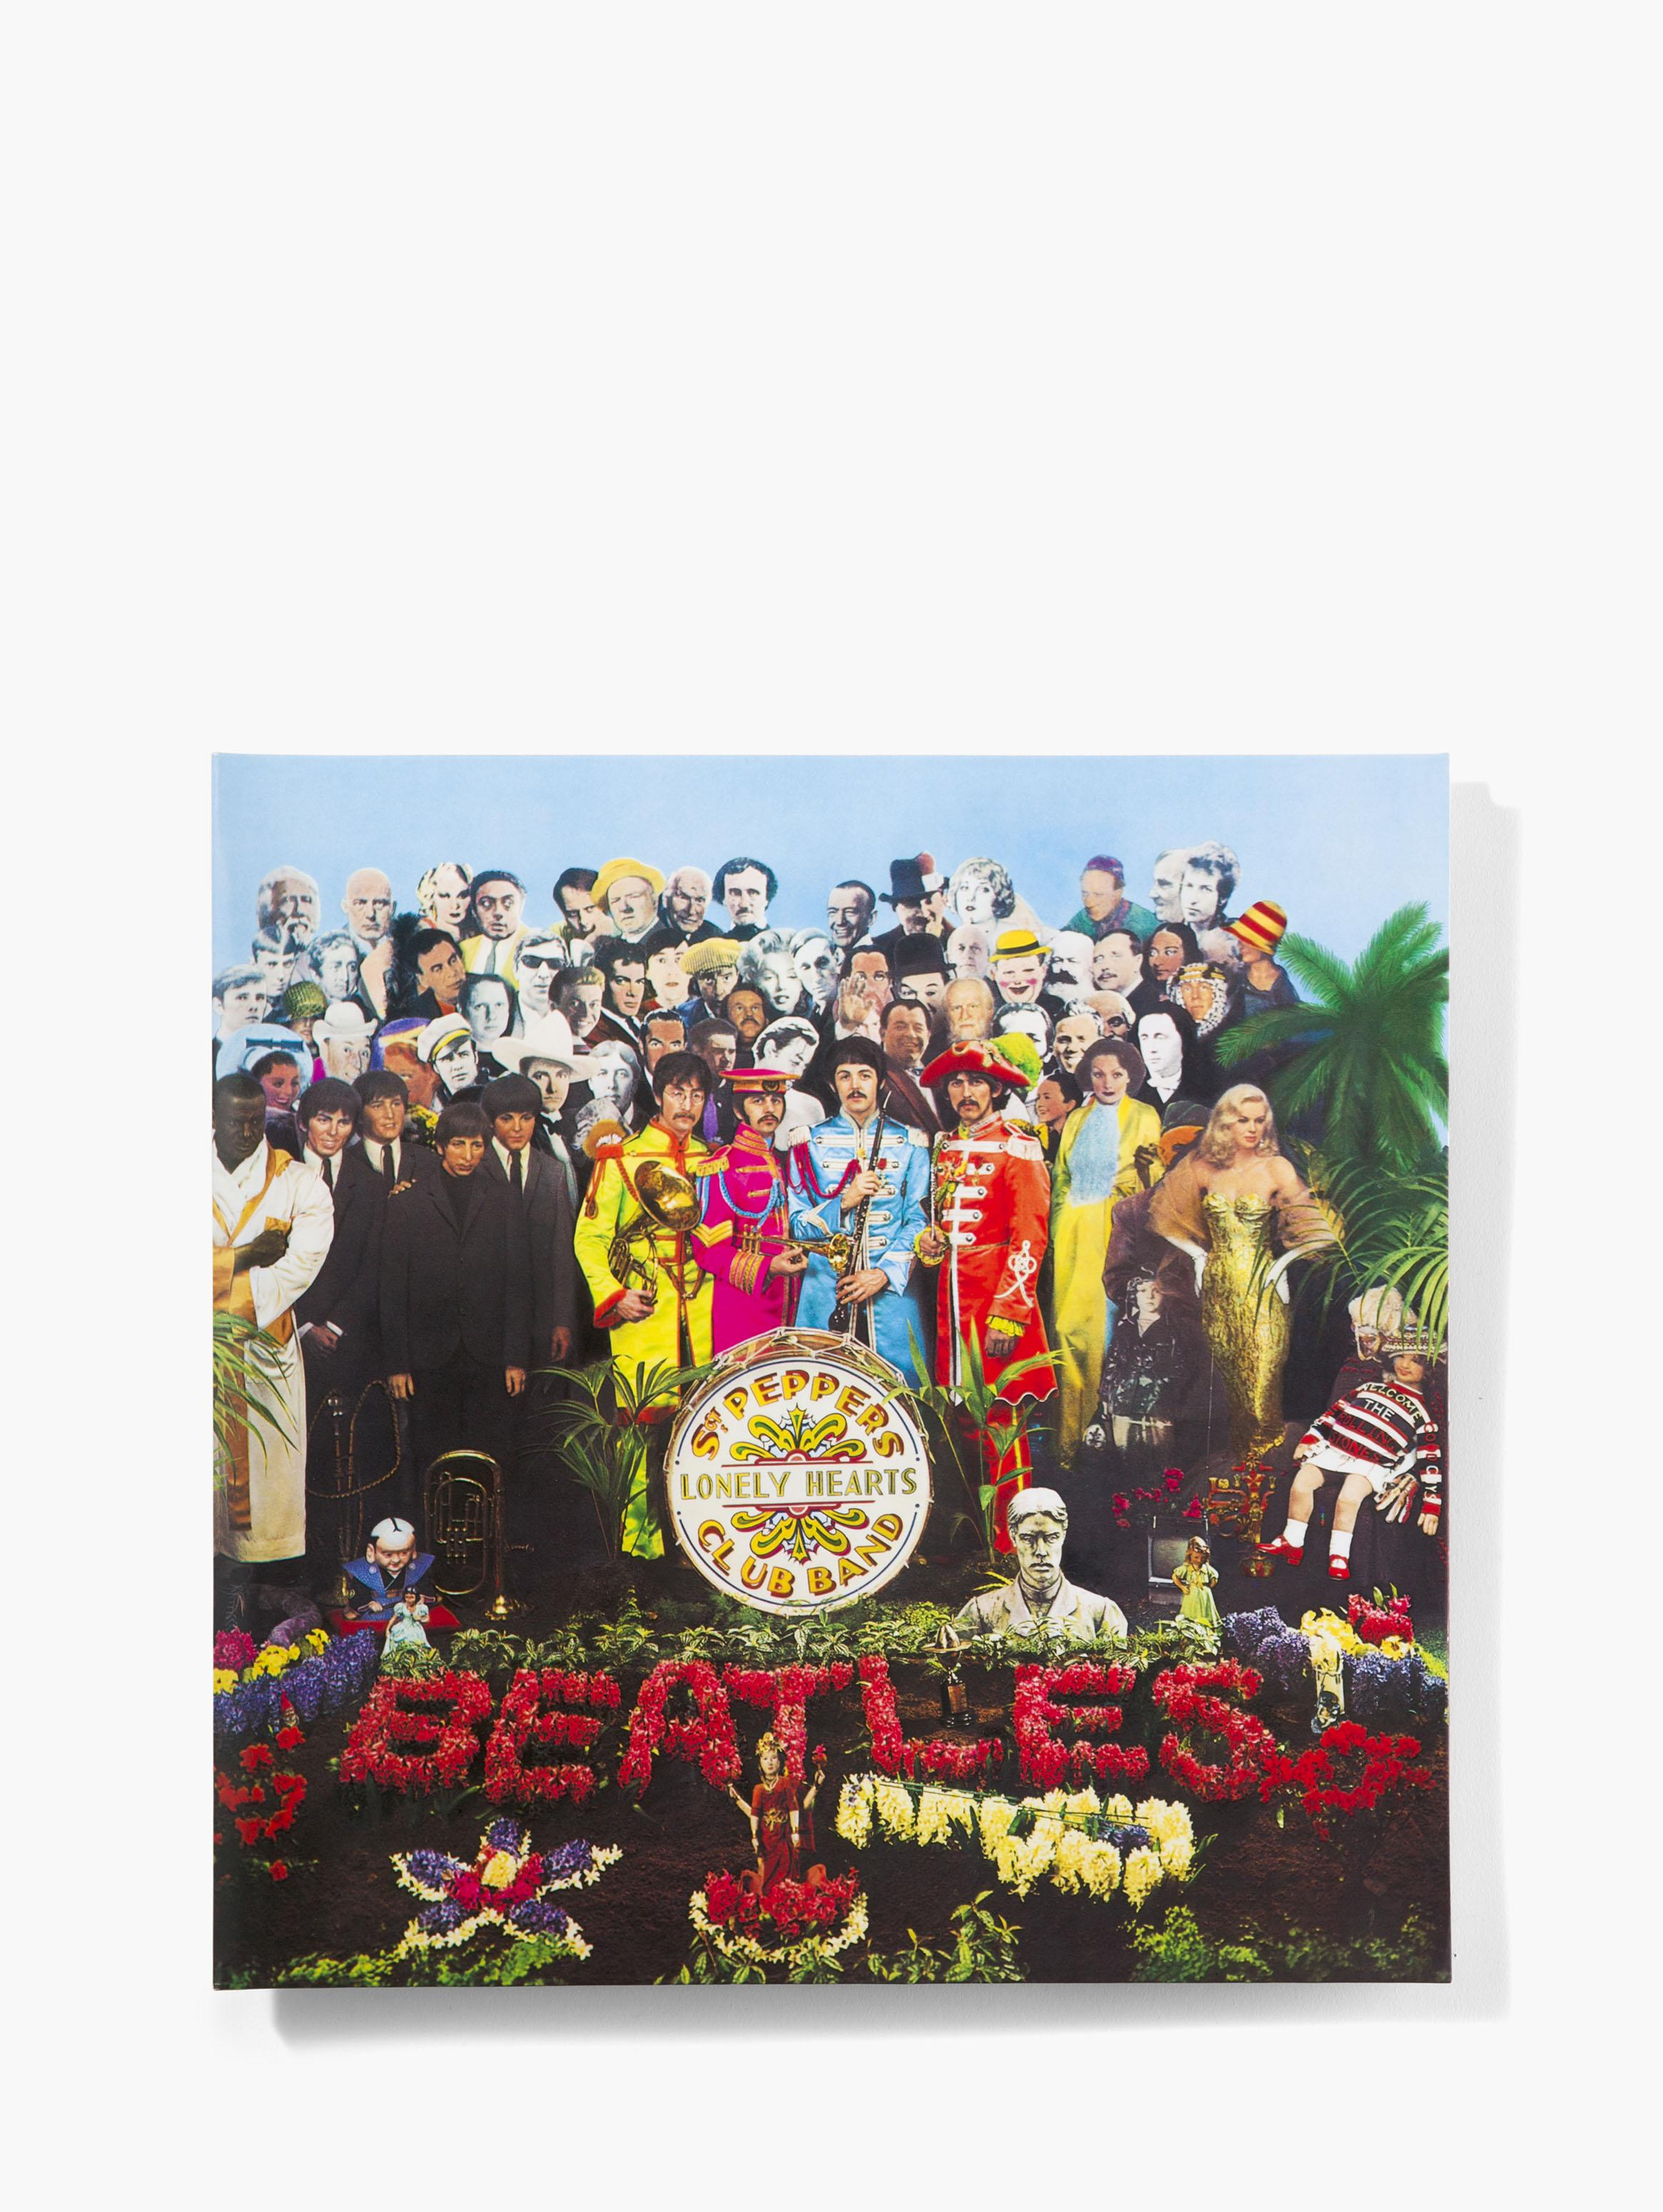 The Beatles - Sgt. Peppers Lonely Hearts Club